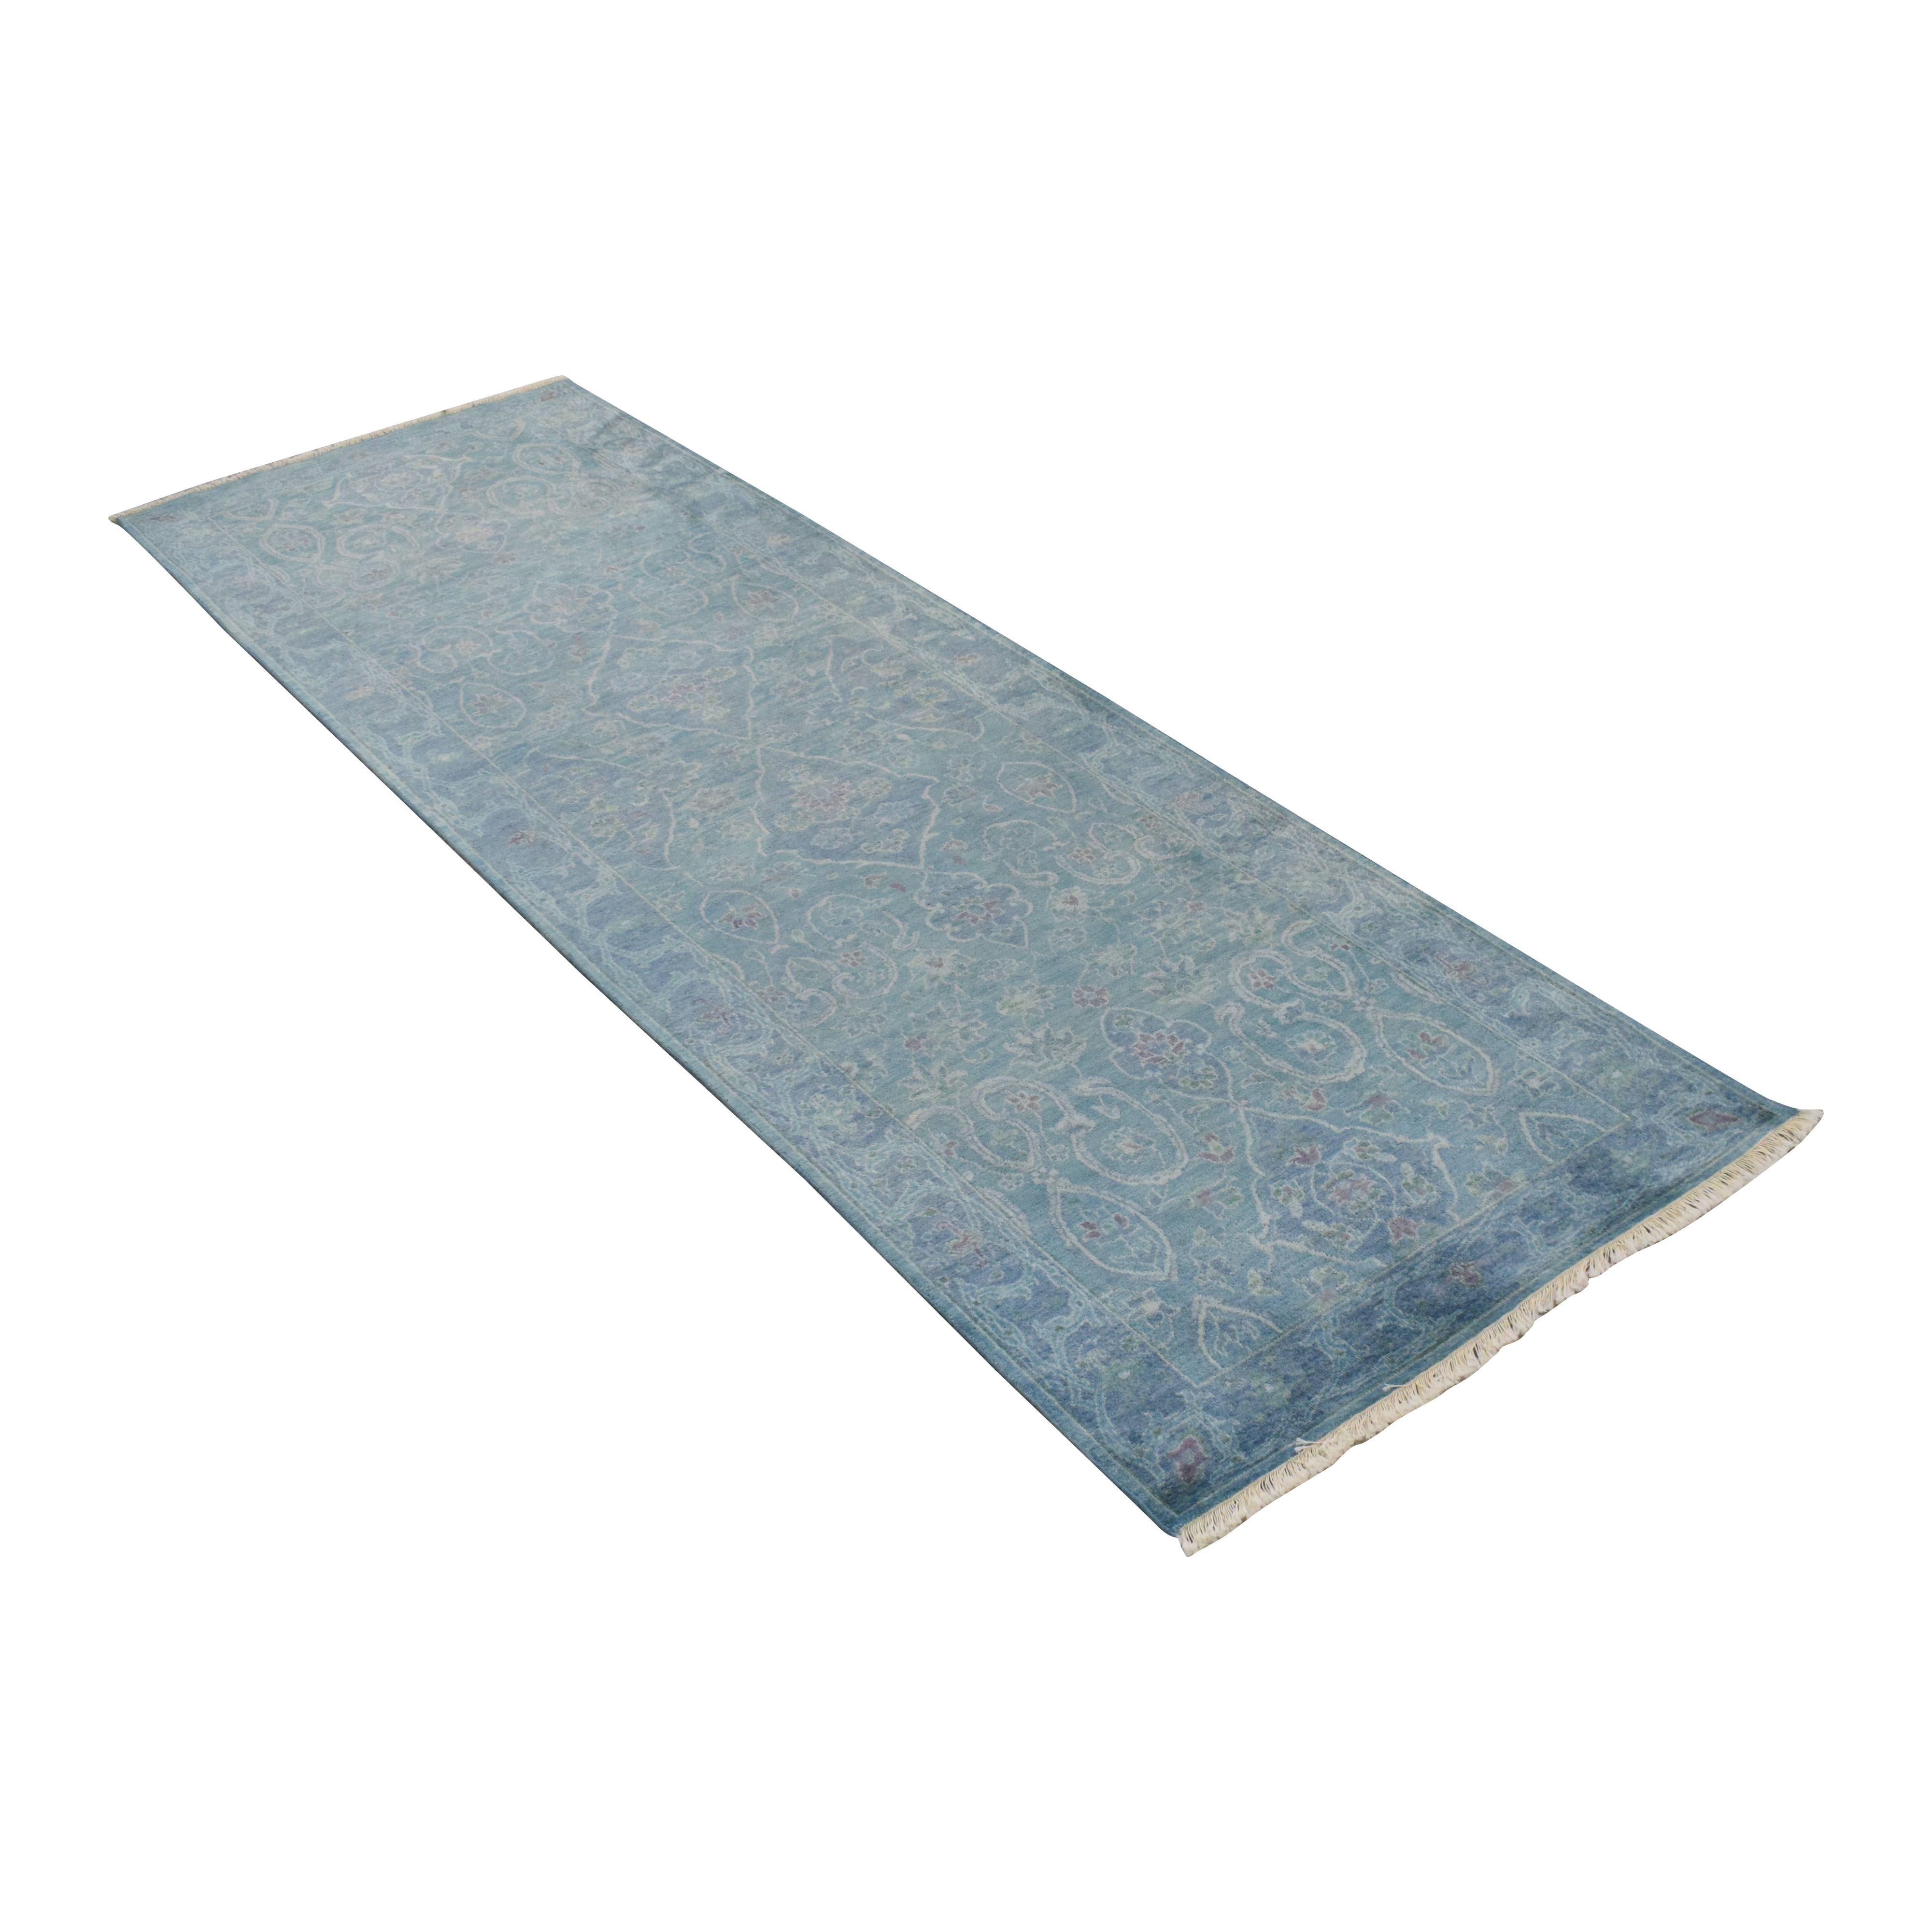 Williams Sonoma Home Arabesque Haze Hand-Knotted Runner Rug / Rugs